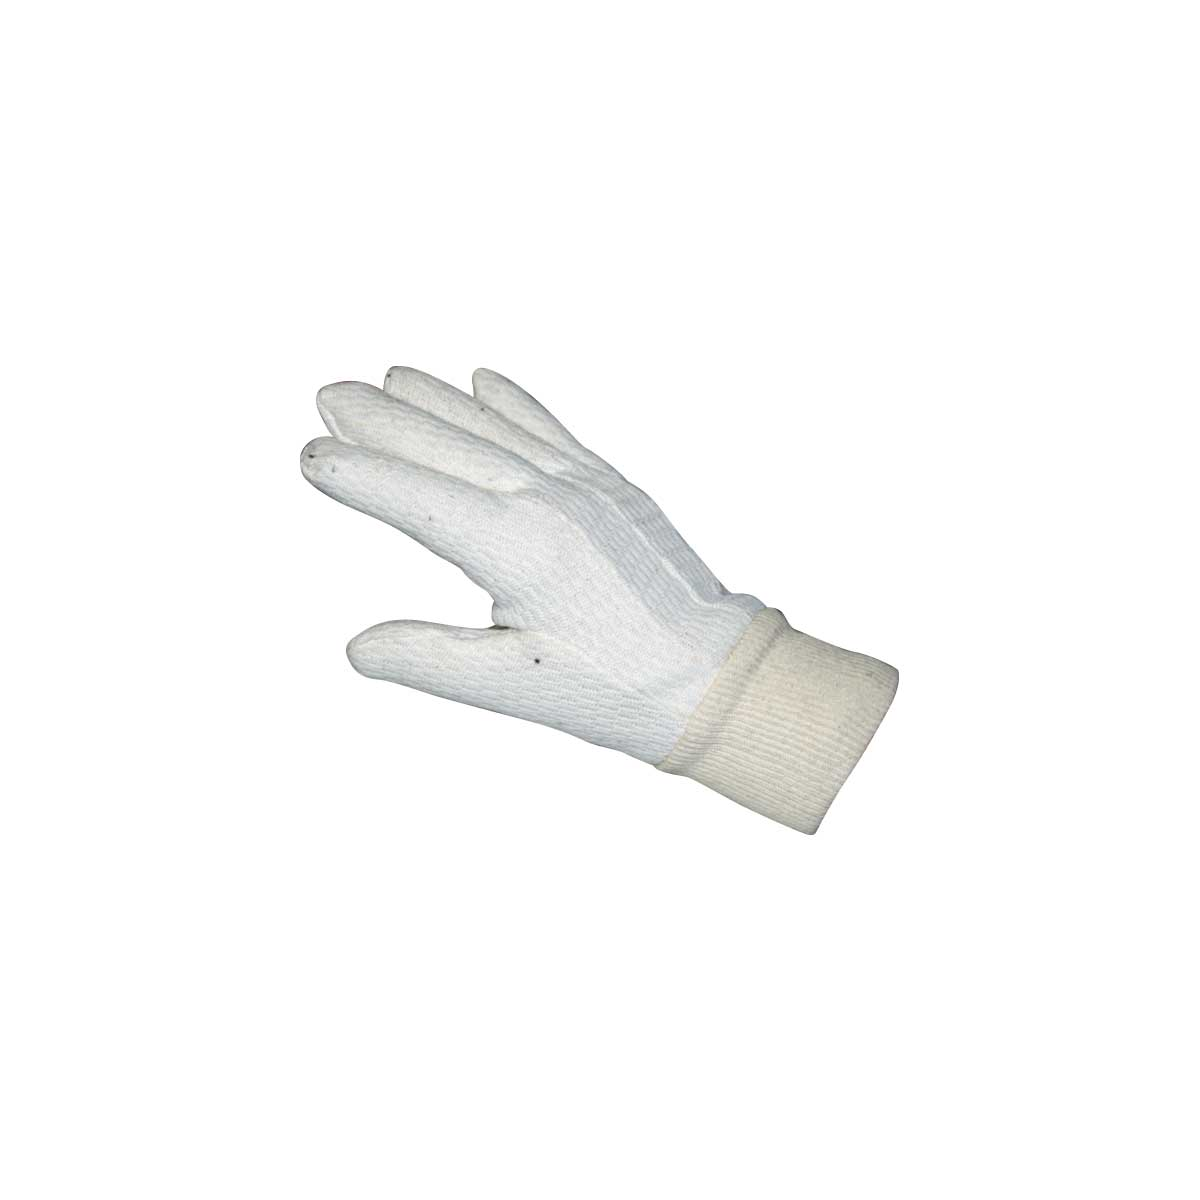 American Safety Thermal Weave Glove Liner White weave with knit wrist, Excellent liner for Rubber Gloves.